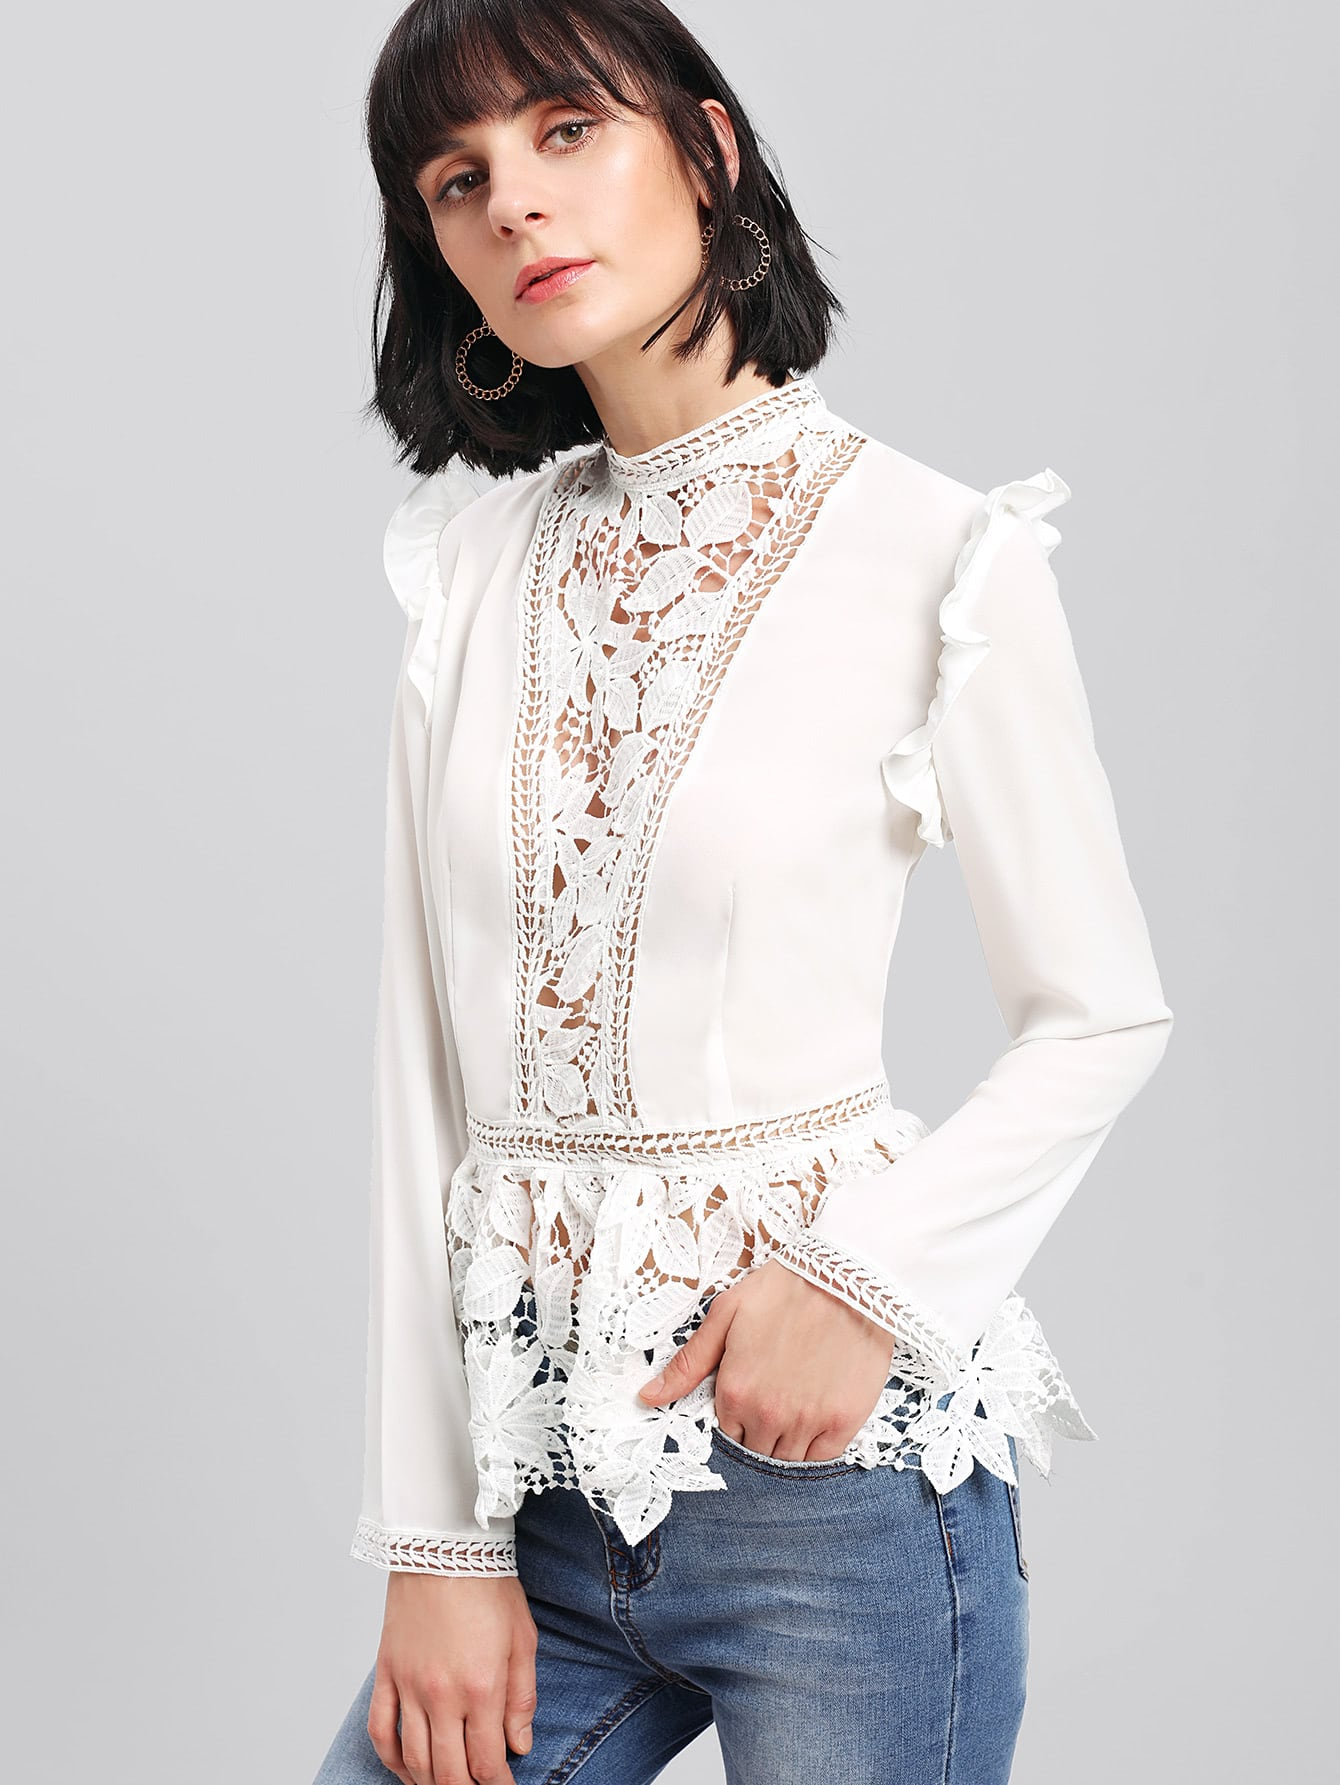 Frilled Shoulder Lace Insert Peplum Top 21067 1411020 11 б у в подольске